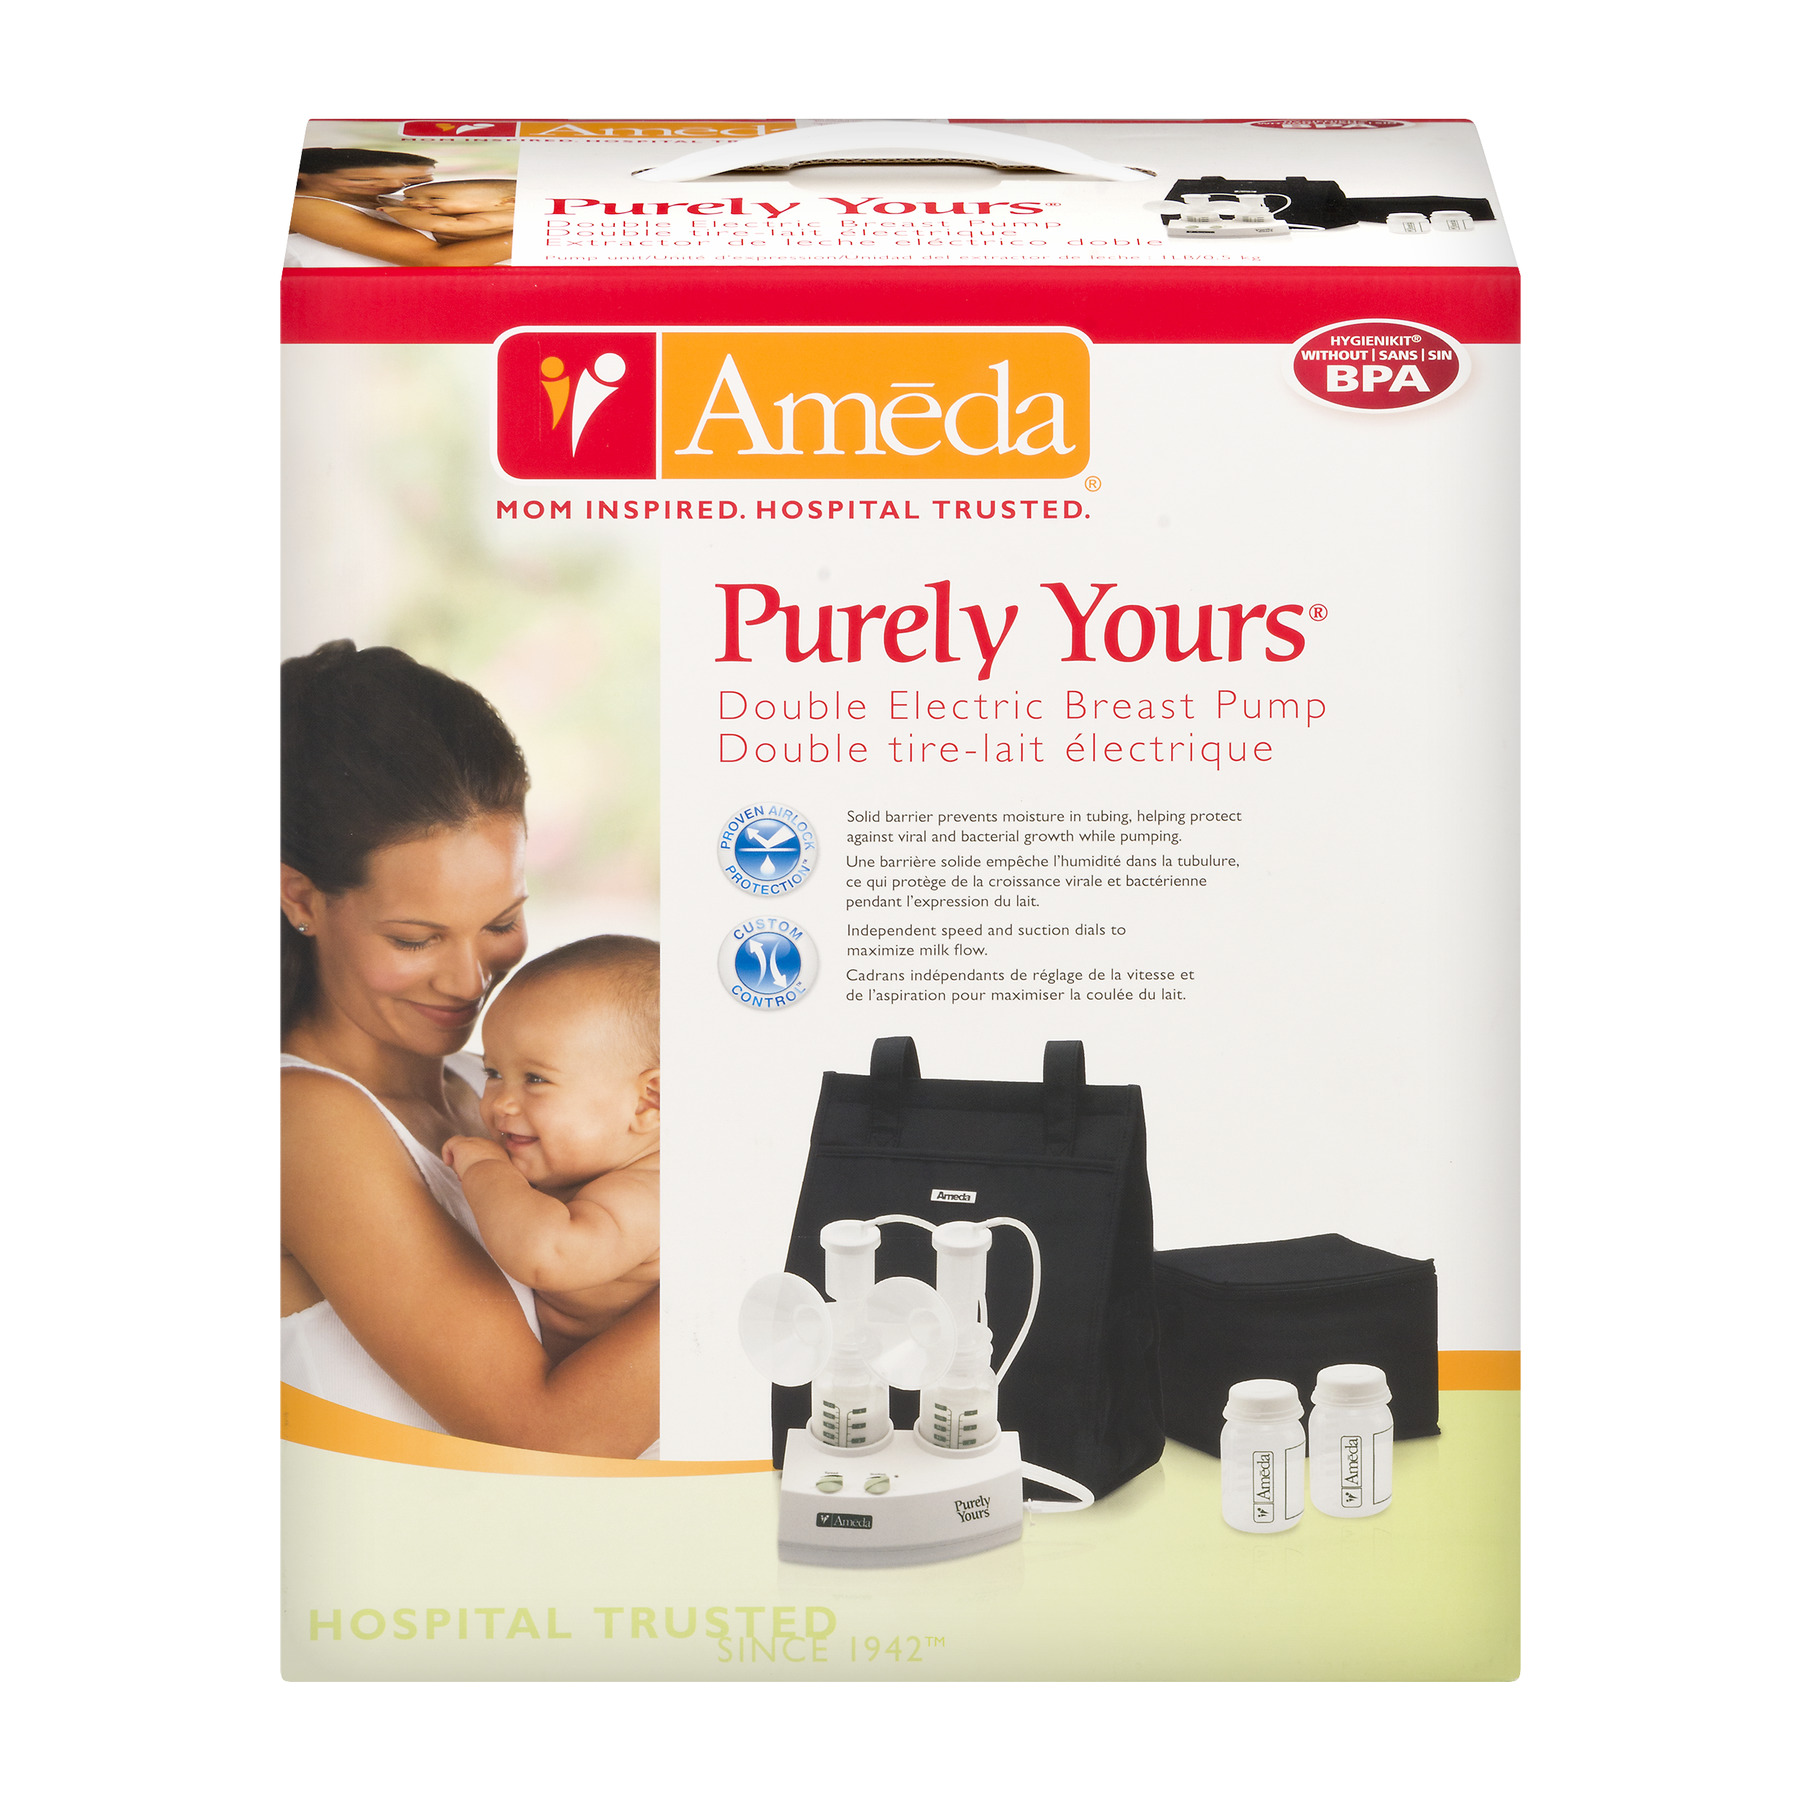 Ameda Purely Yours Double Electric Breast Pump, 1.0 CT